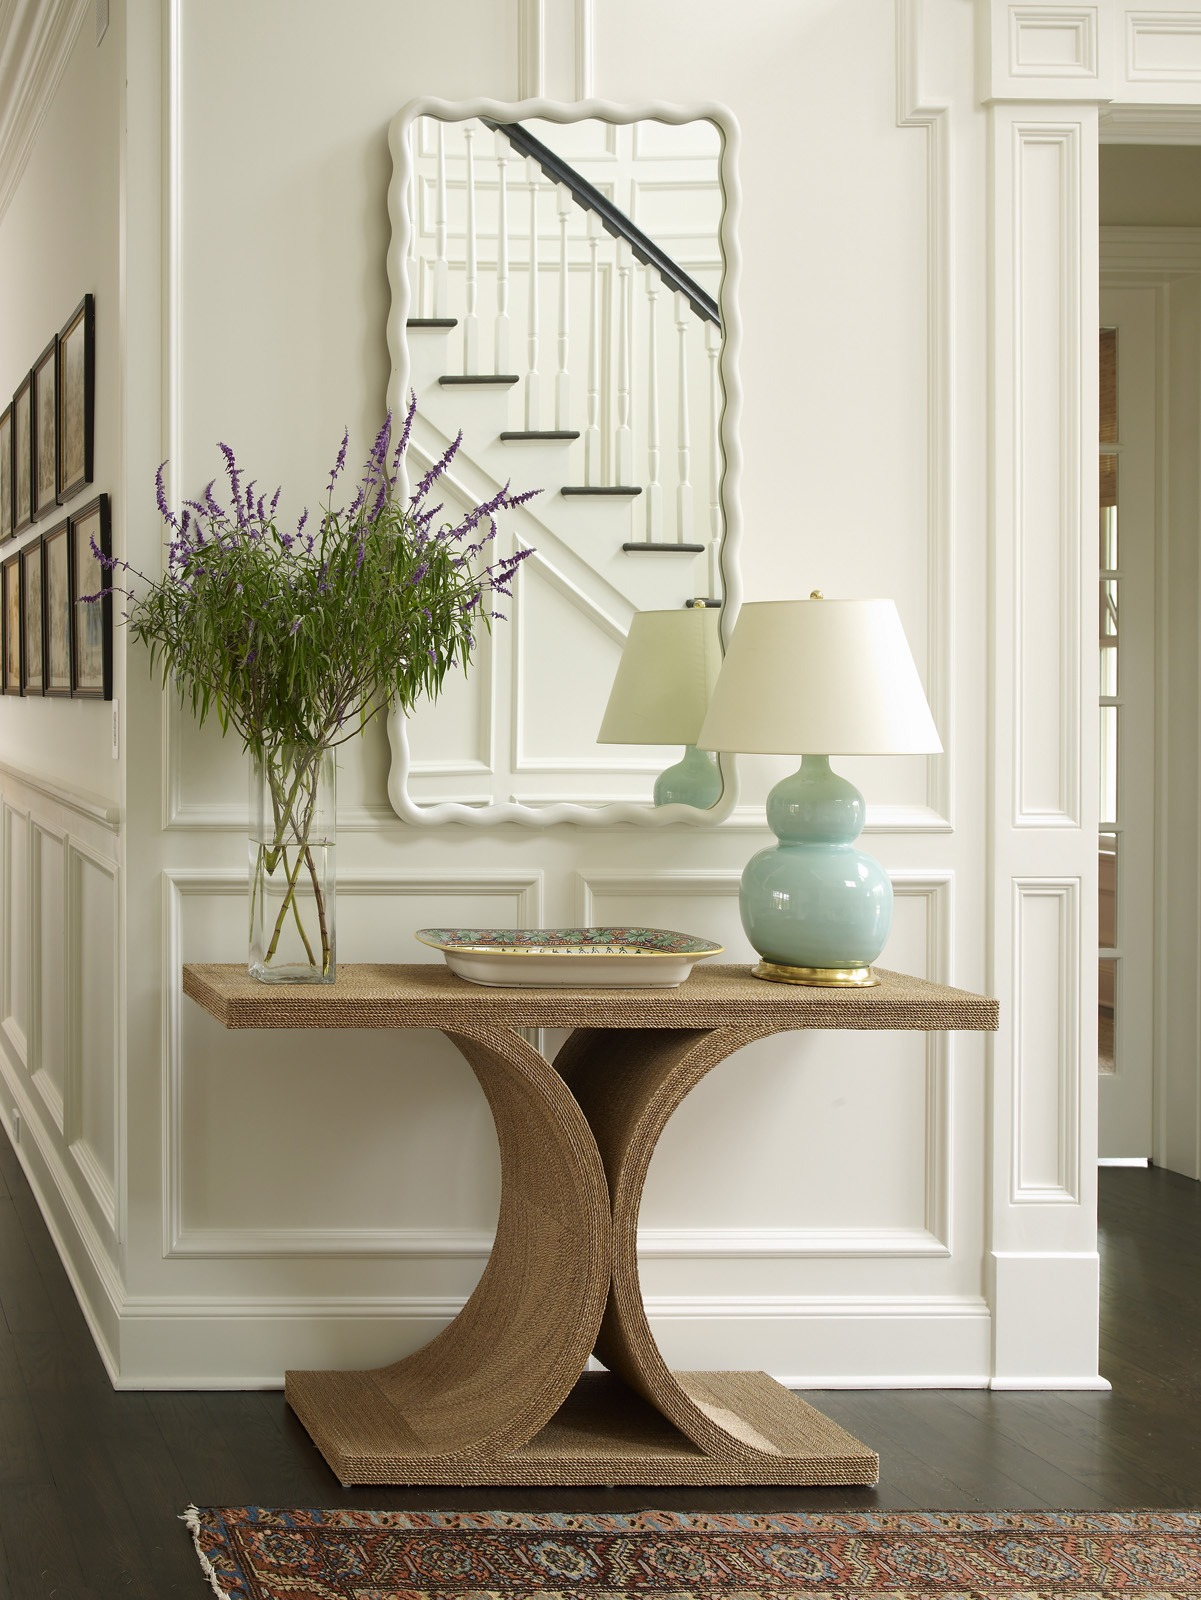 Meg Braff Designs Southampton home entry foyer